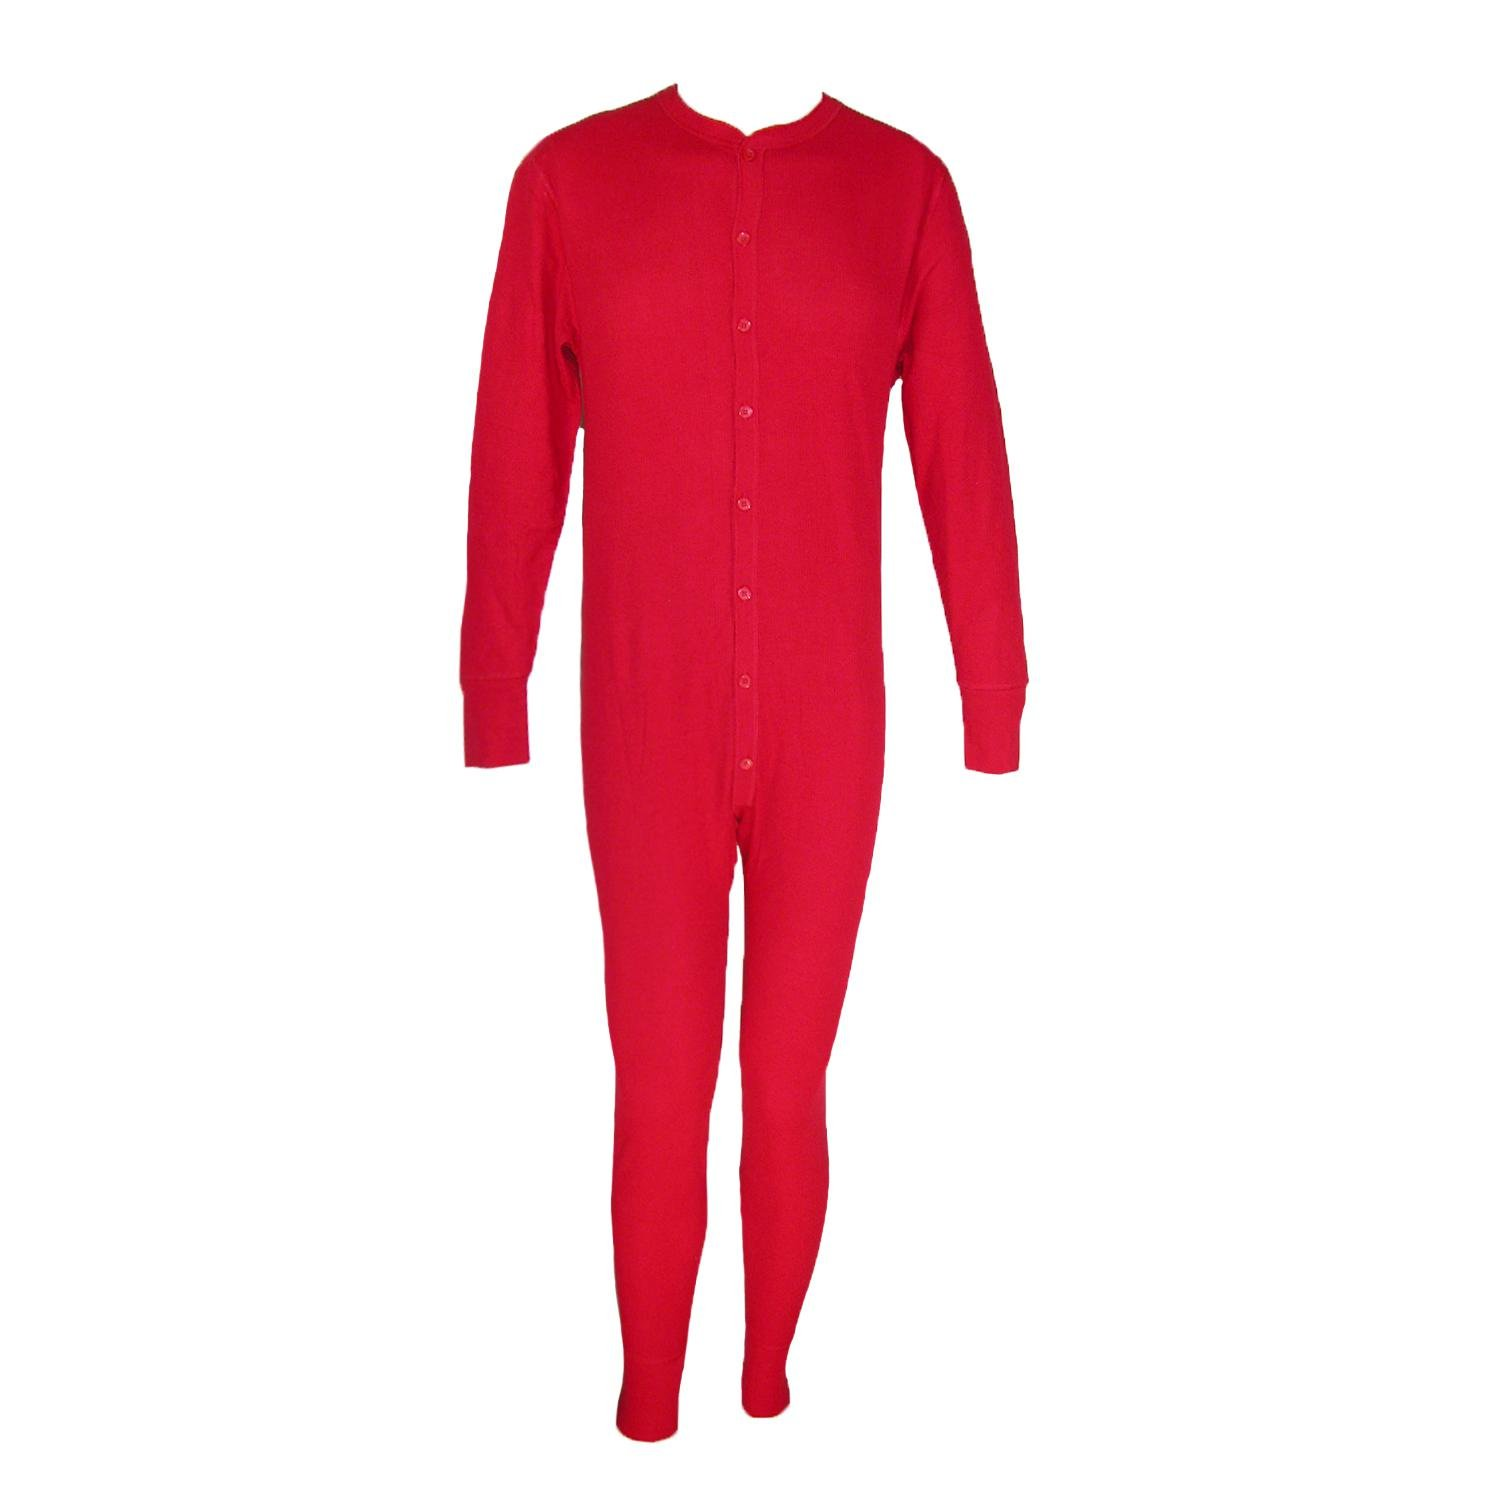 Hanes Men's Big and Tall Thermal Insulated Union Suit, 3X, Red